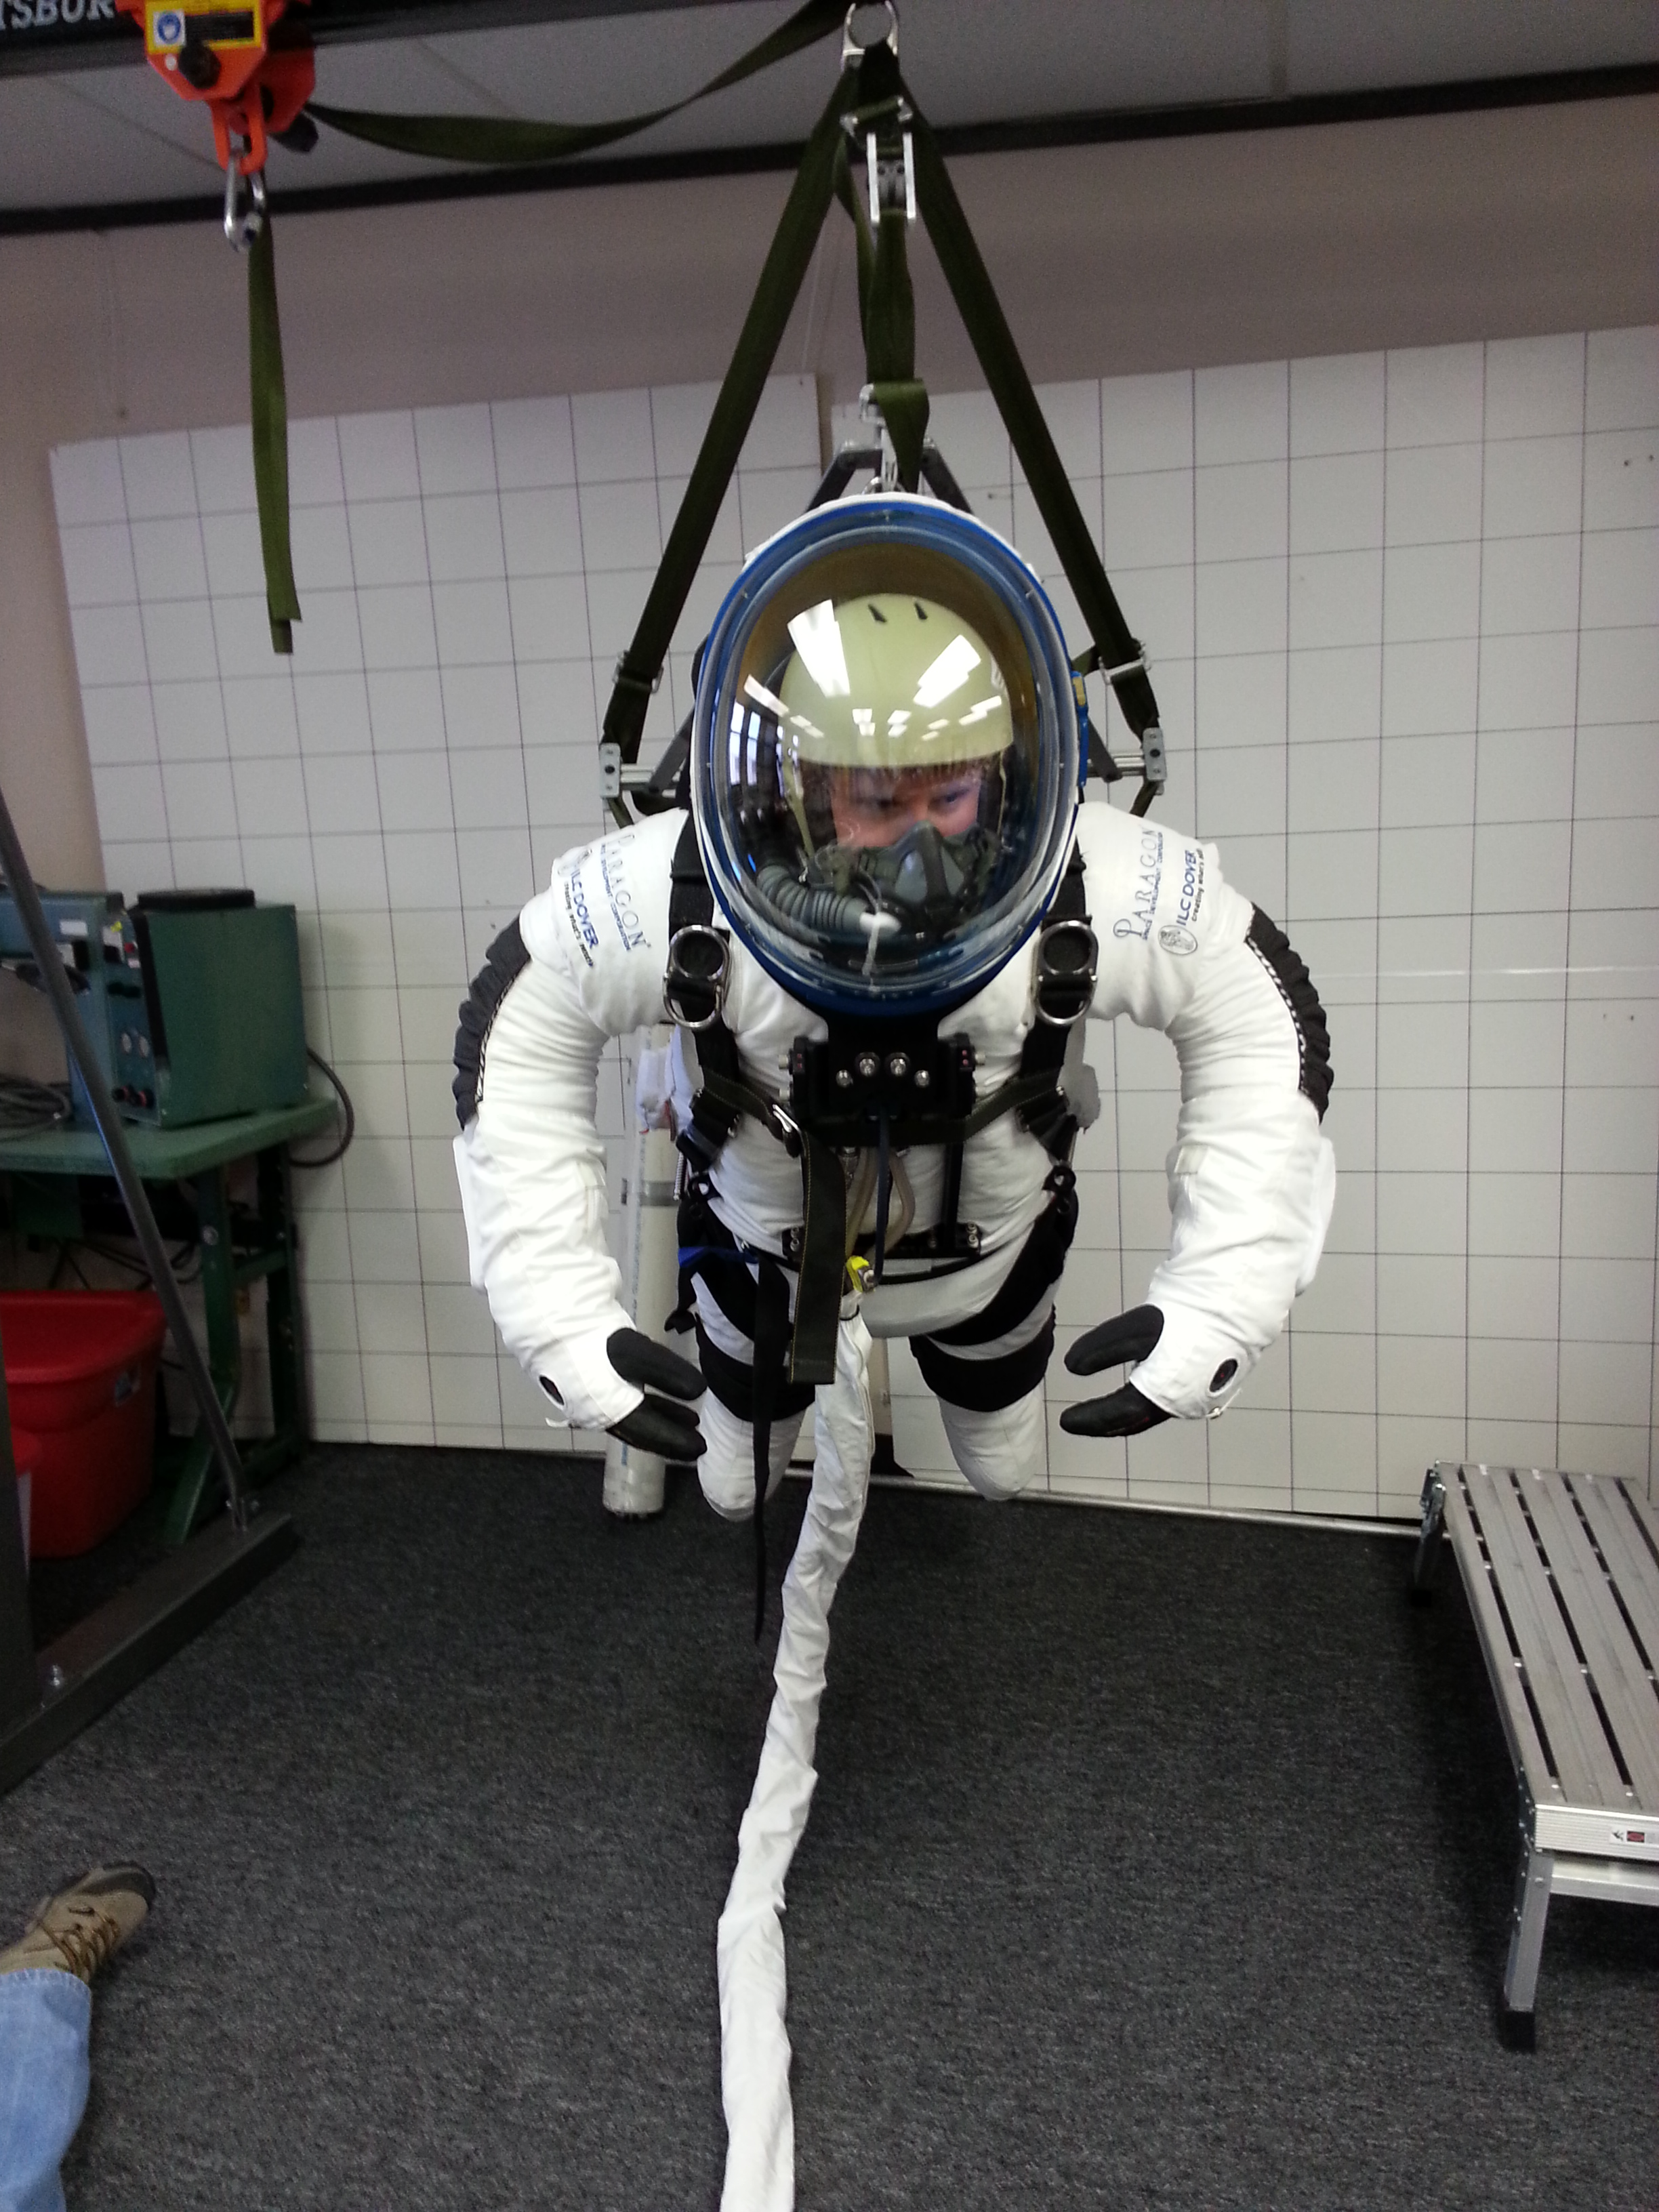 Jared Leidich in the StratEx space suit. Photo courtesy of Alan Eustace.